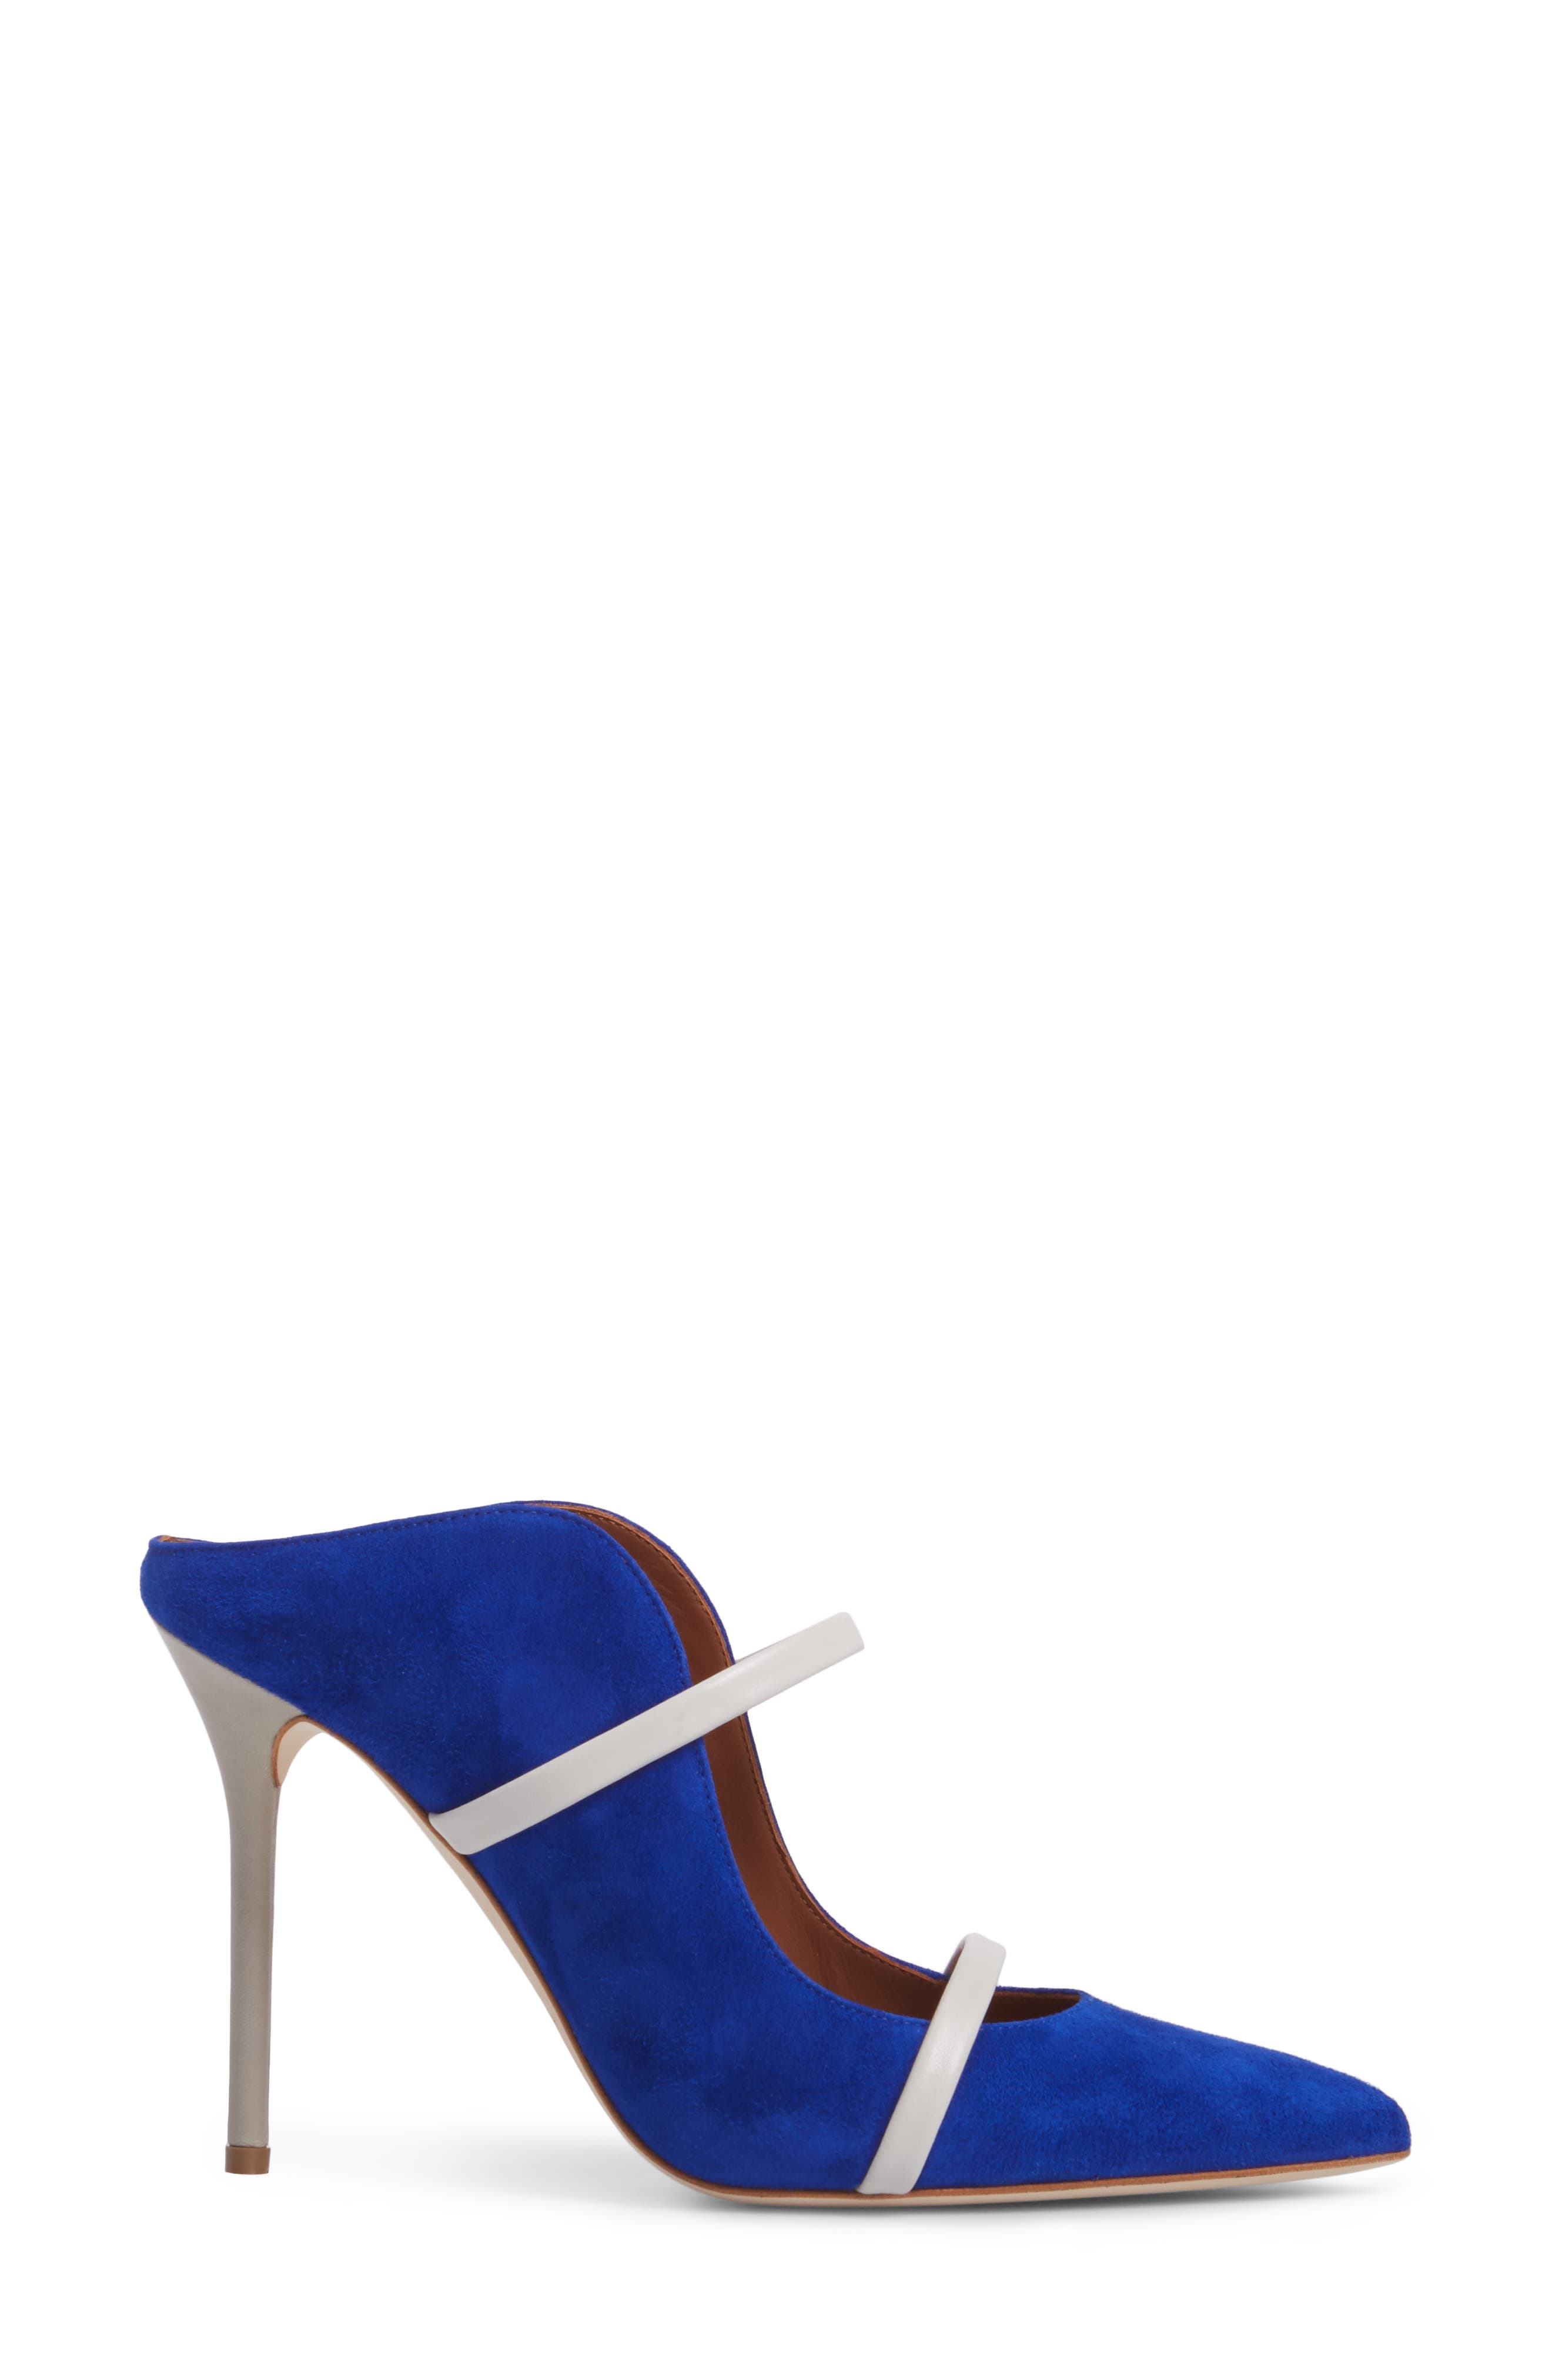 Maureen Double Band Mule,                             Alternate thumbnail 3, color,                             Electric Blue/ Foam/ Grey